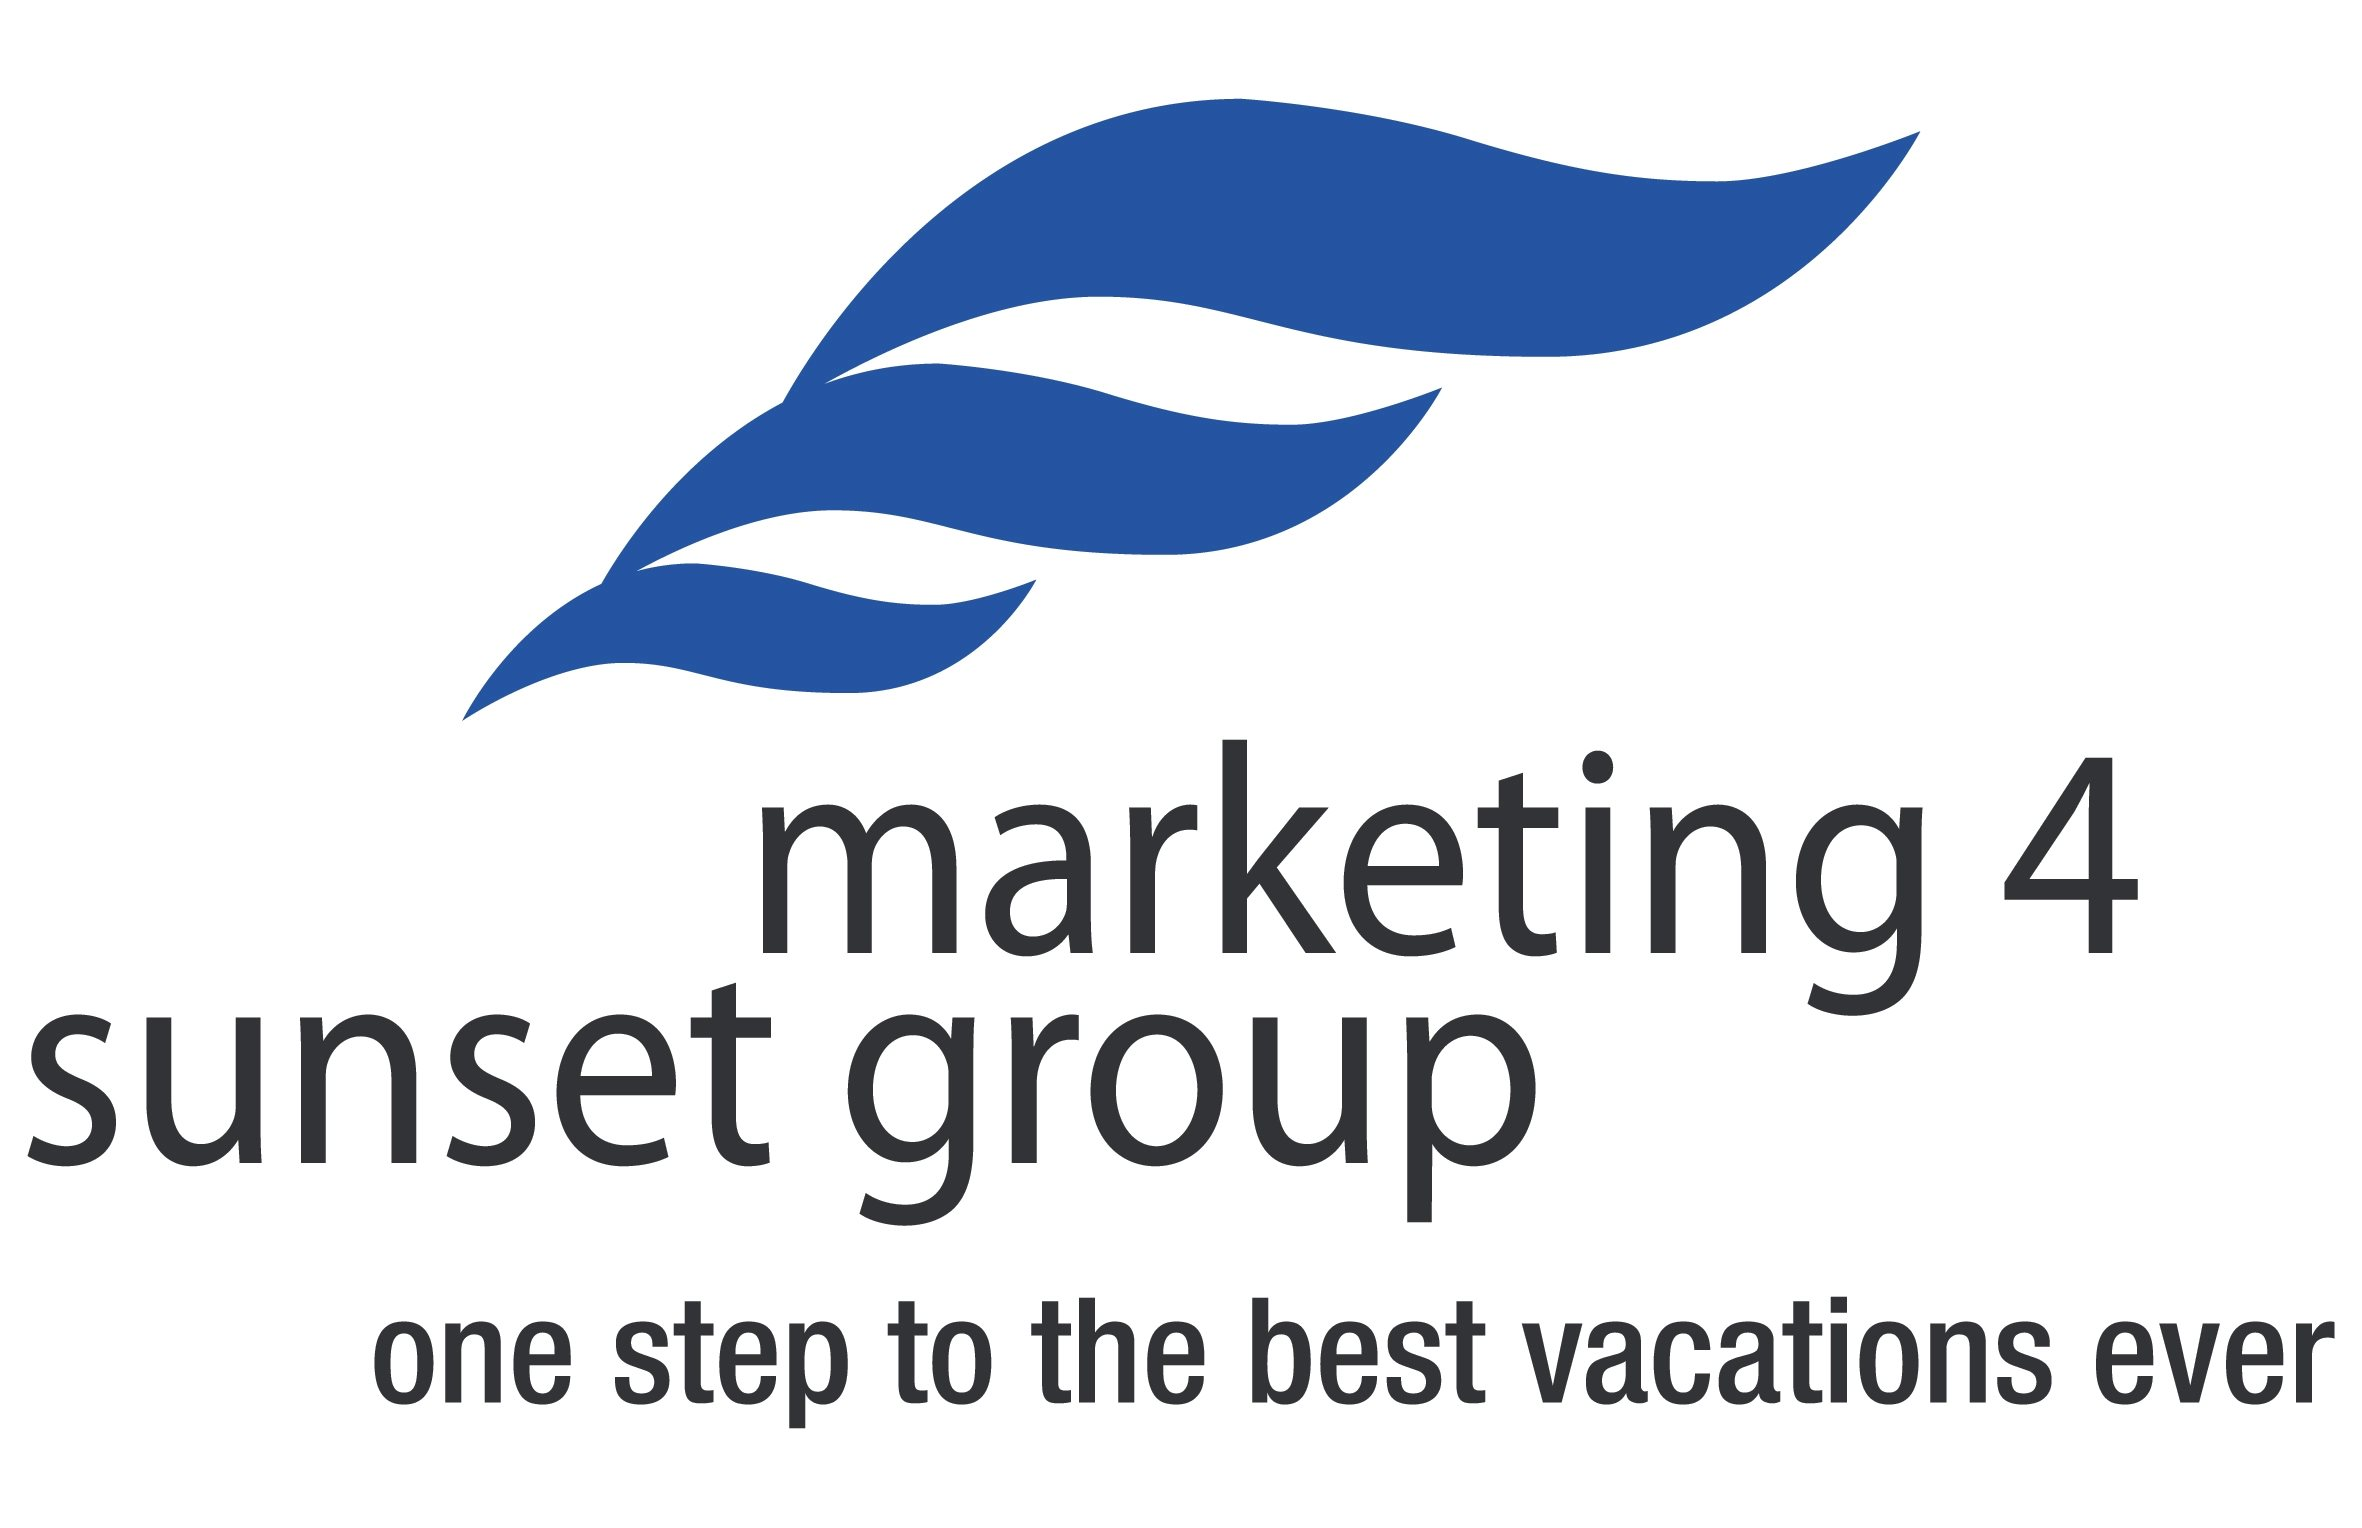 Marketing 4 Sunset Group